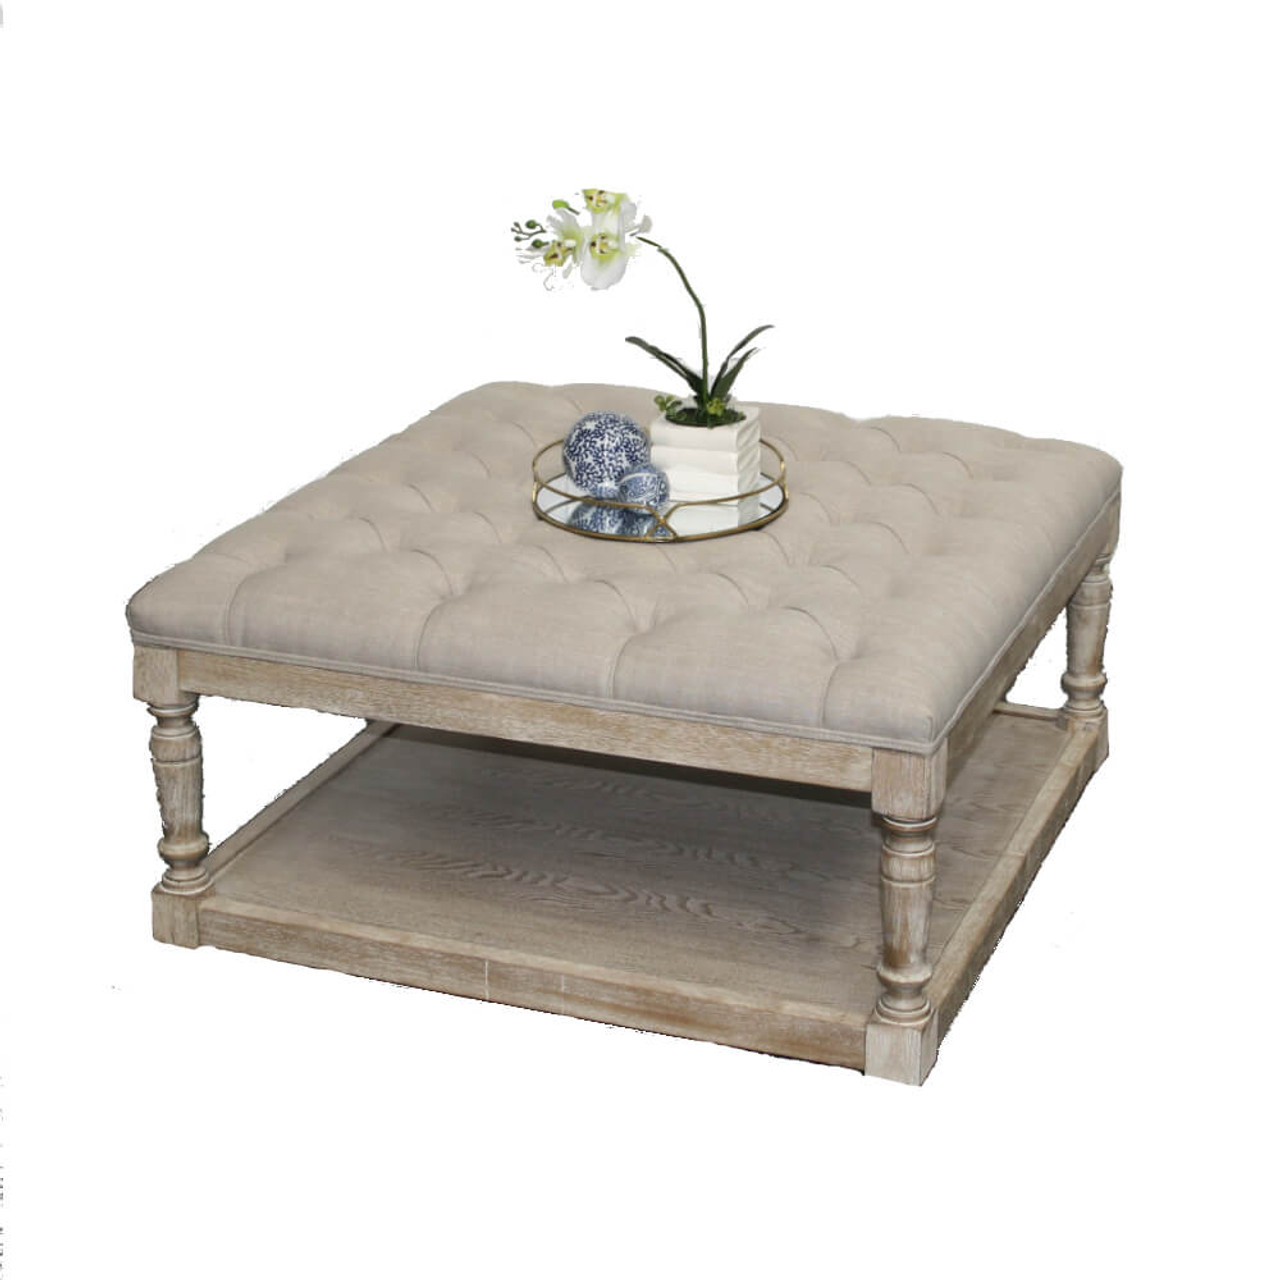 Tufted Ottoman Coffee Table Hamptons Button Chesterfield Whitewash